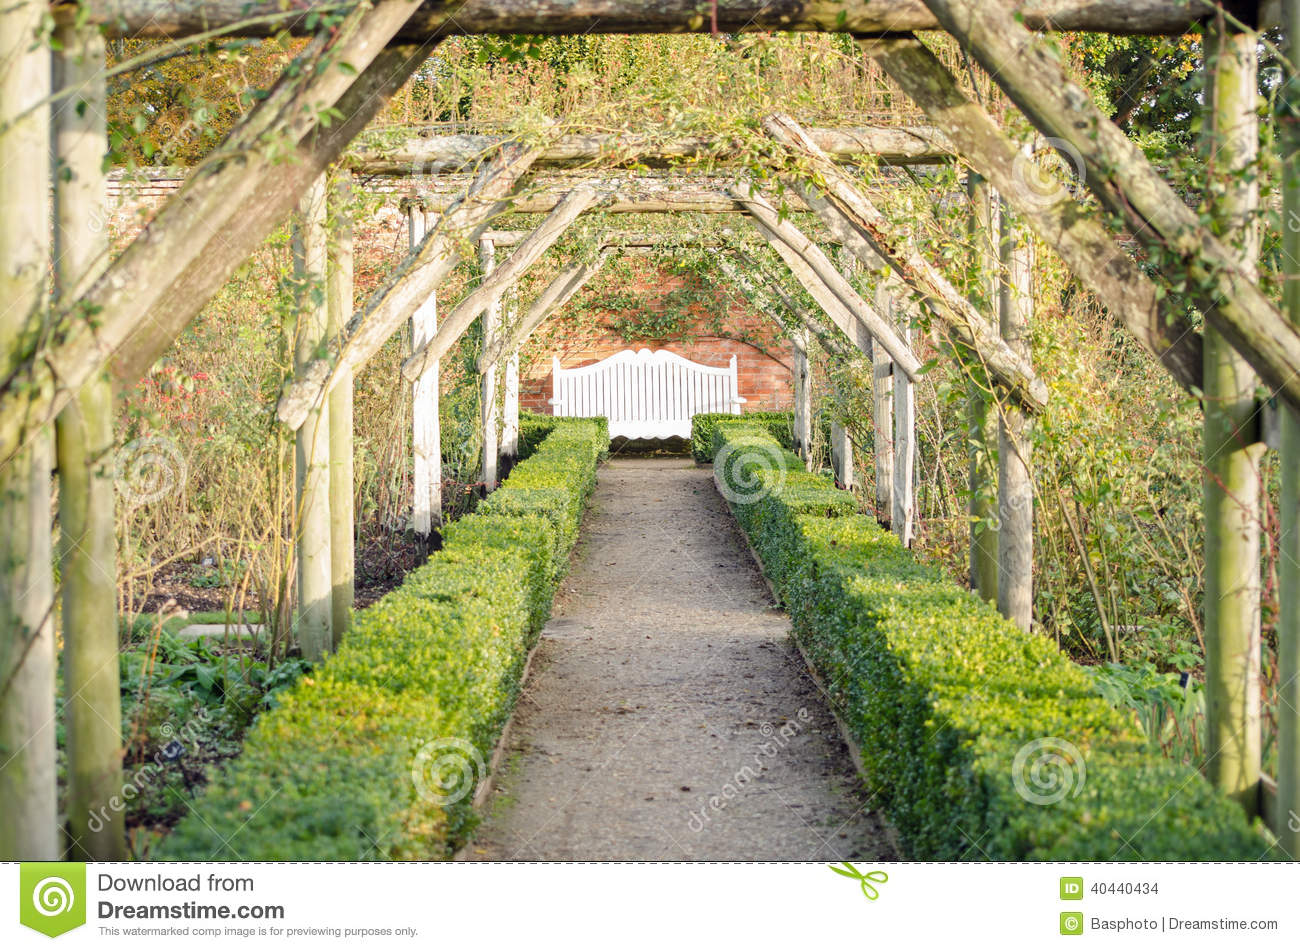 Pergola mit bank designs upfront how to build a wood in few simple